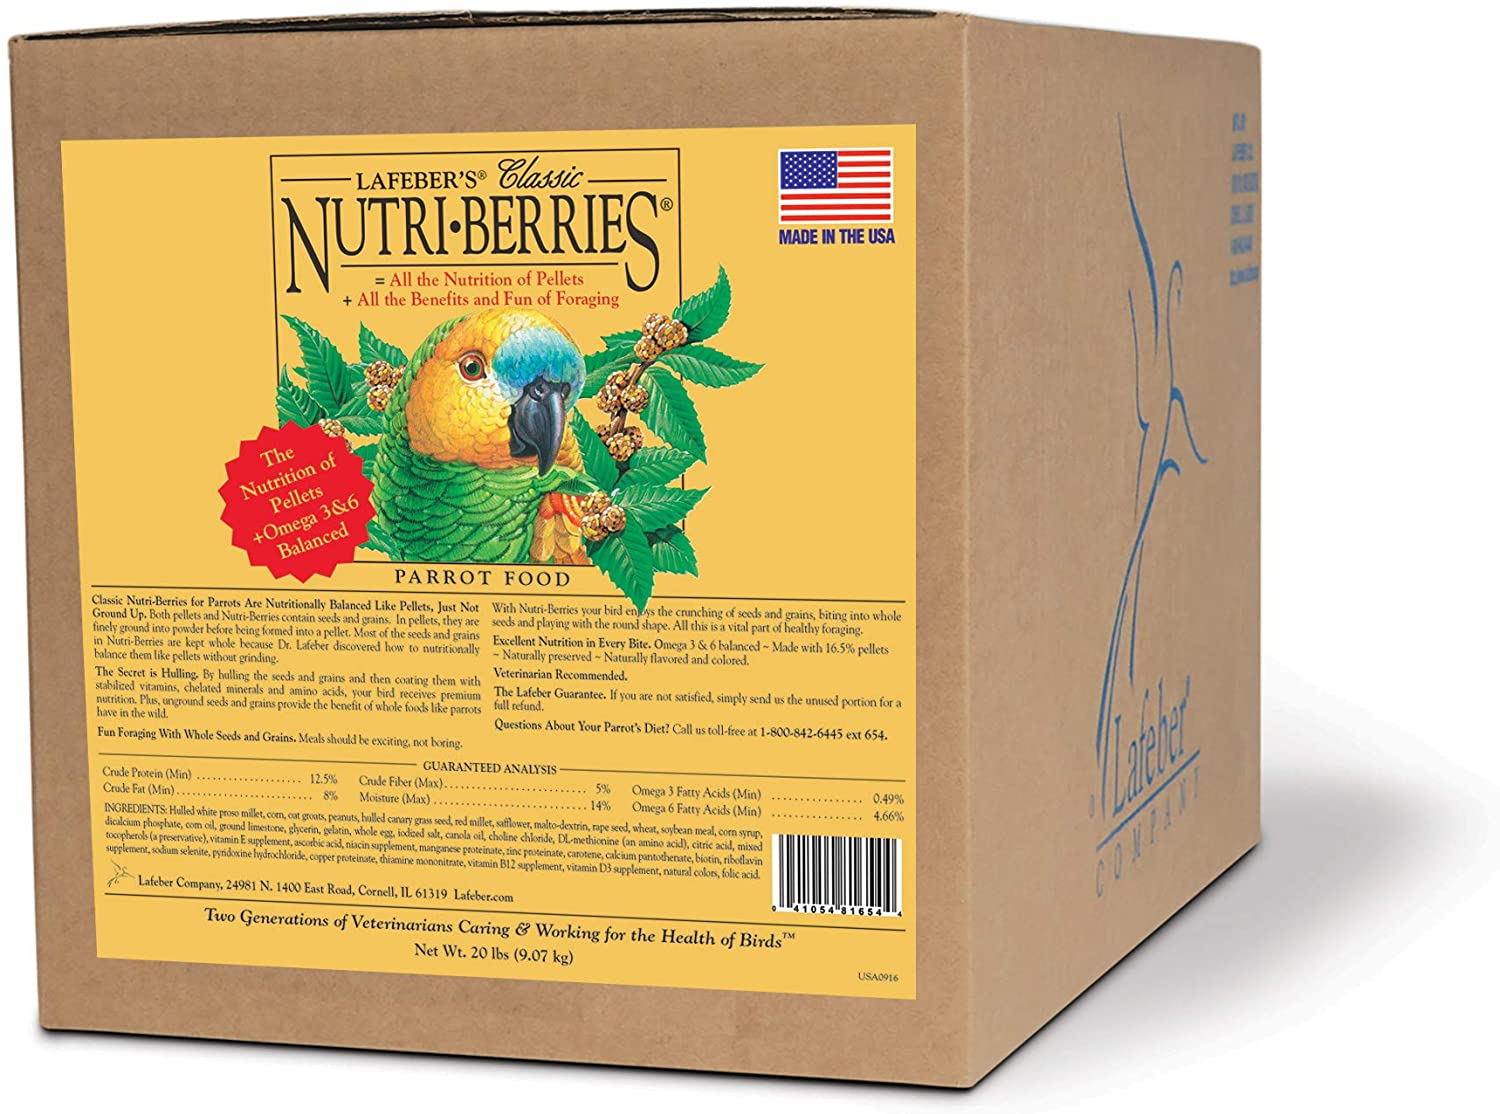 LAFEBER'S Classic Nutri-Berries Pet Bird Food, Made with Non-GMO and Human-Grade Ingredients, for Parrots, 20 lbs